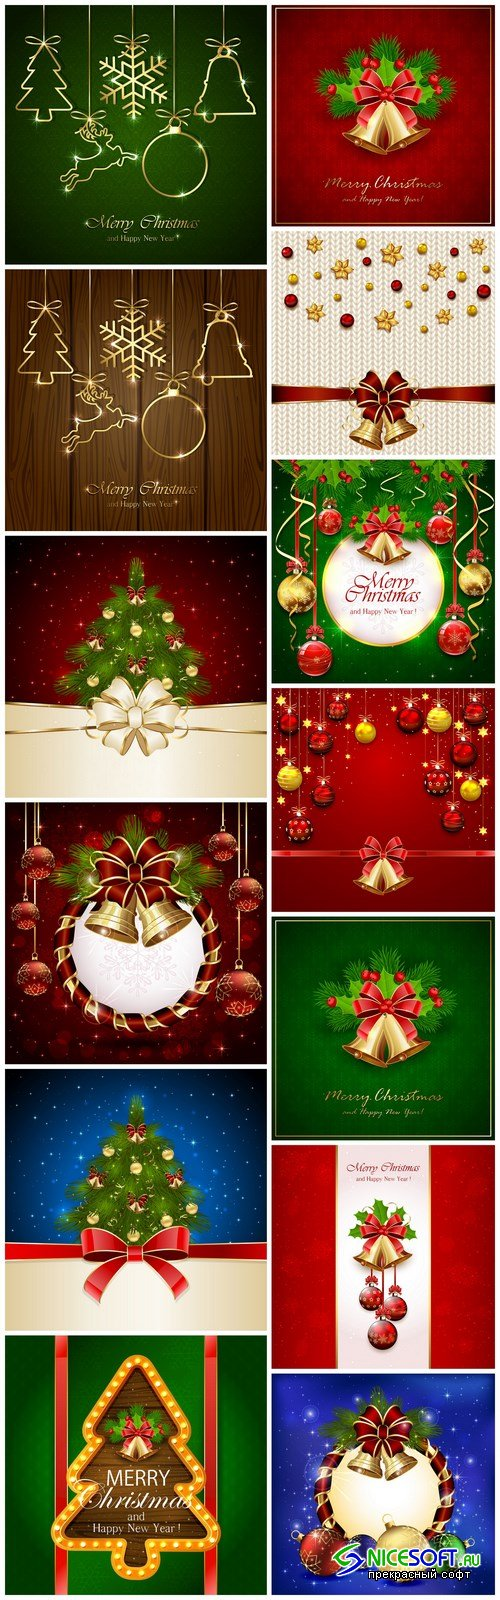 New Year 2017 & Christmas Design 16 - 13xEPS Vector Stock